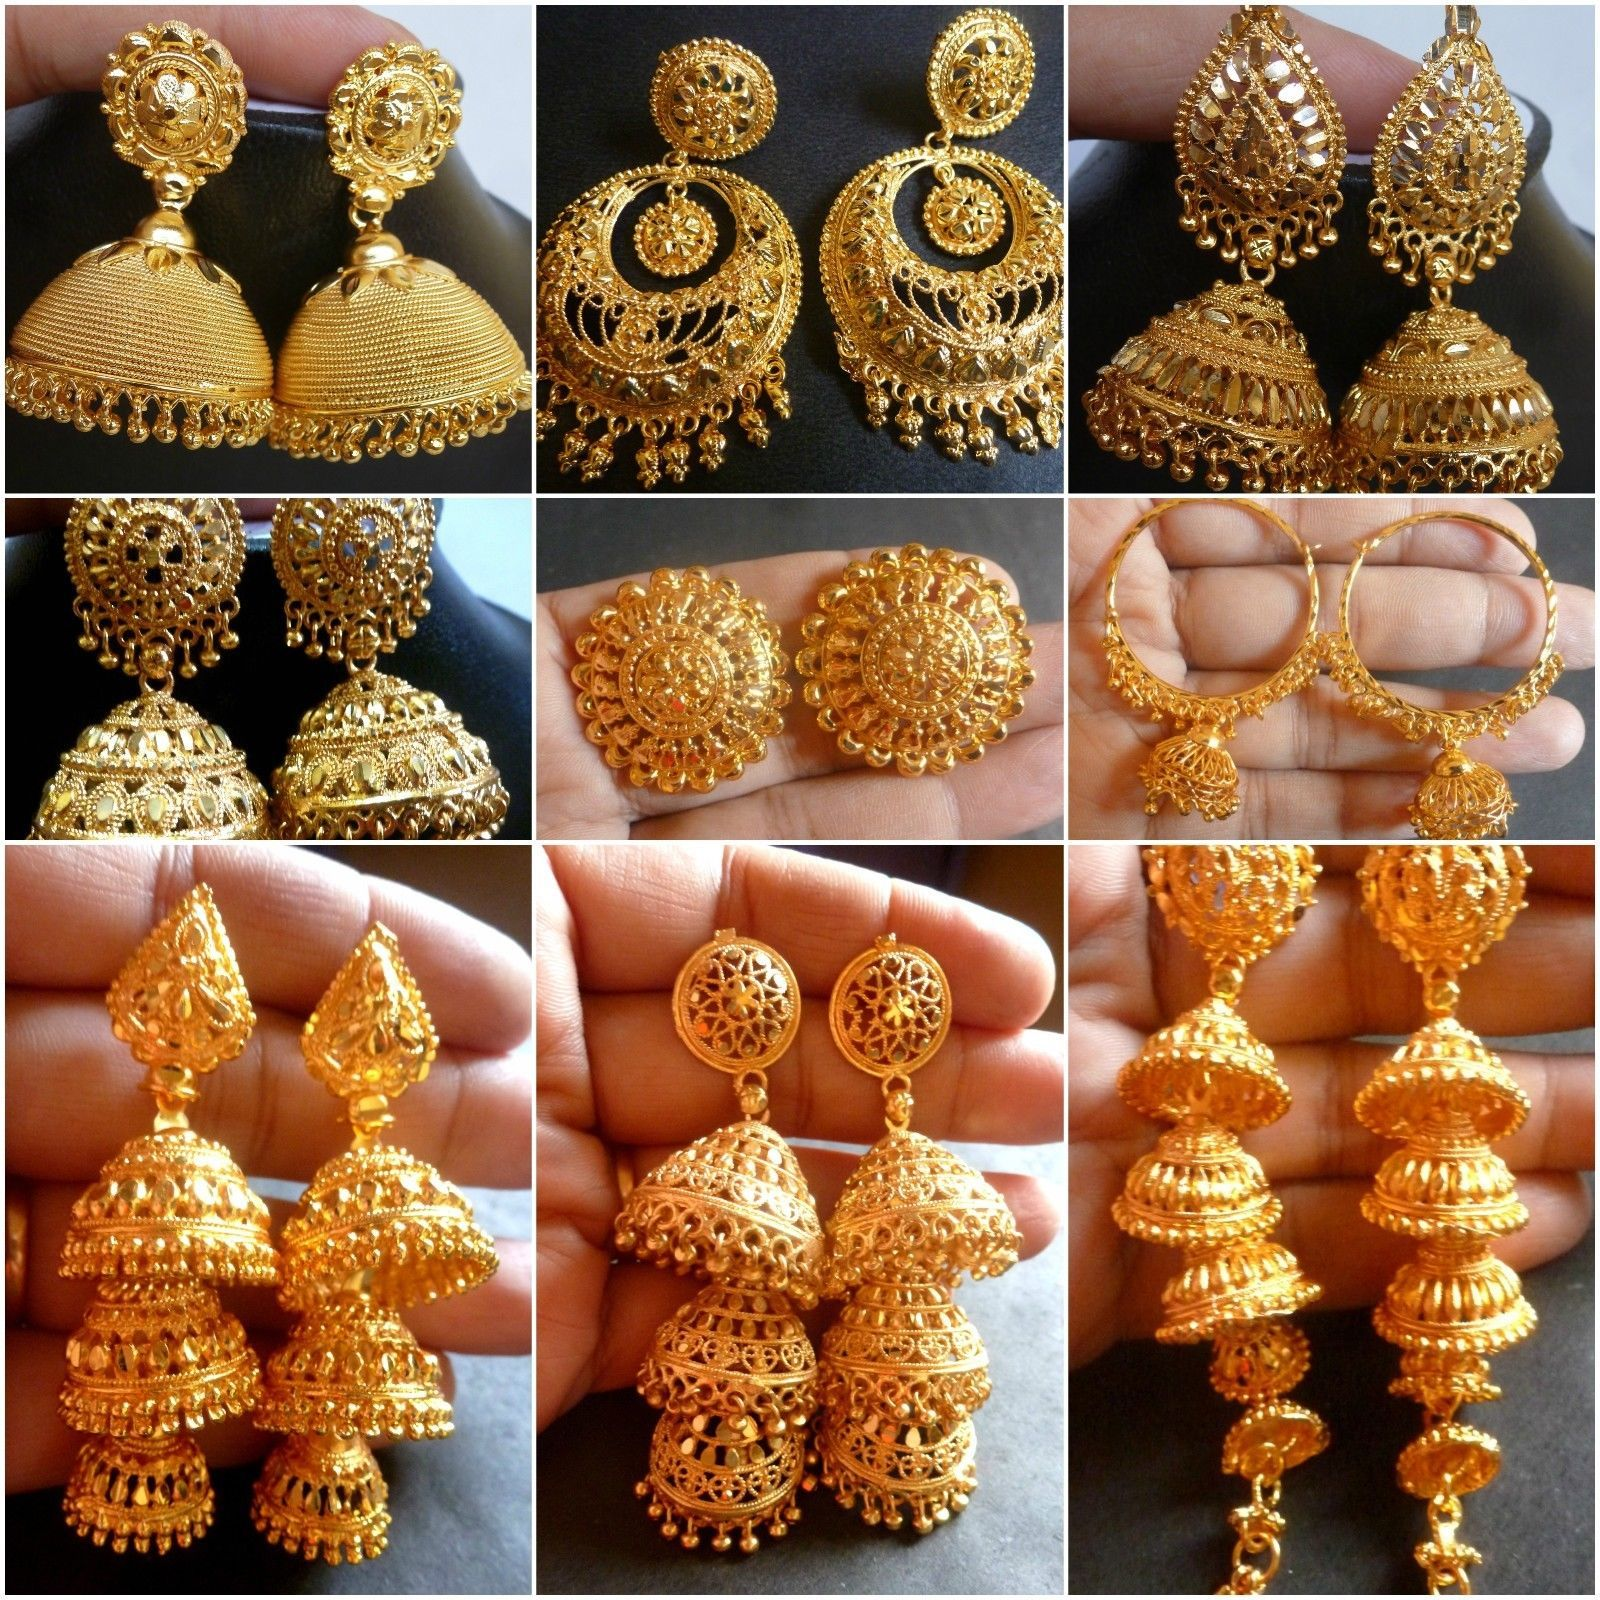 Costume Jewellery Objective Indian Ethnic Gold Tone Pearl Beads Chand Bali Earring Wedding Jewelry Beautiful And Charming